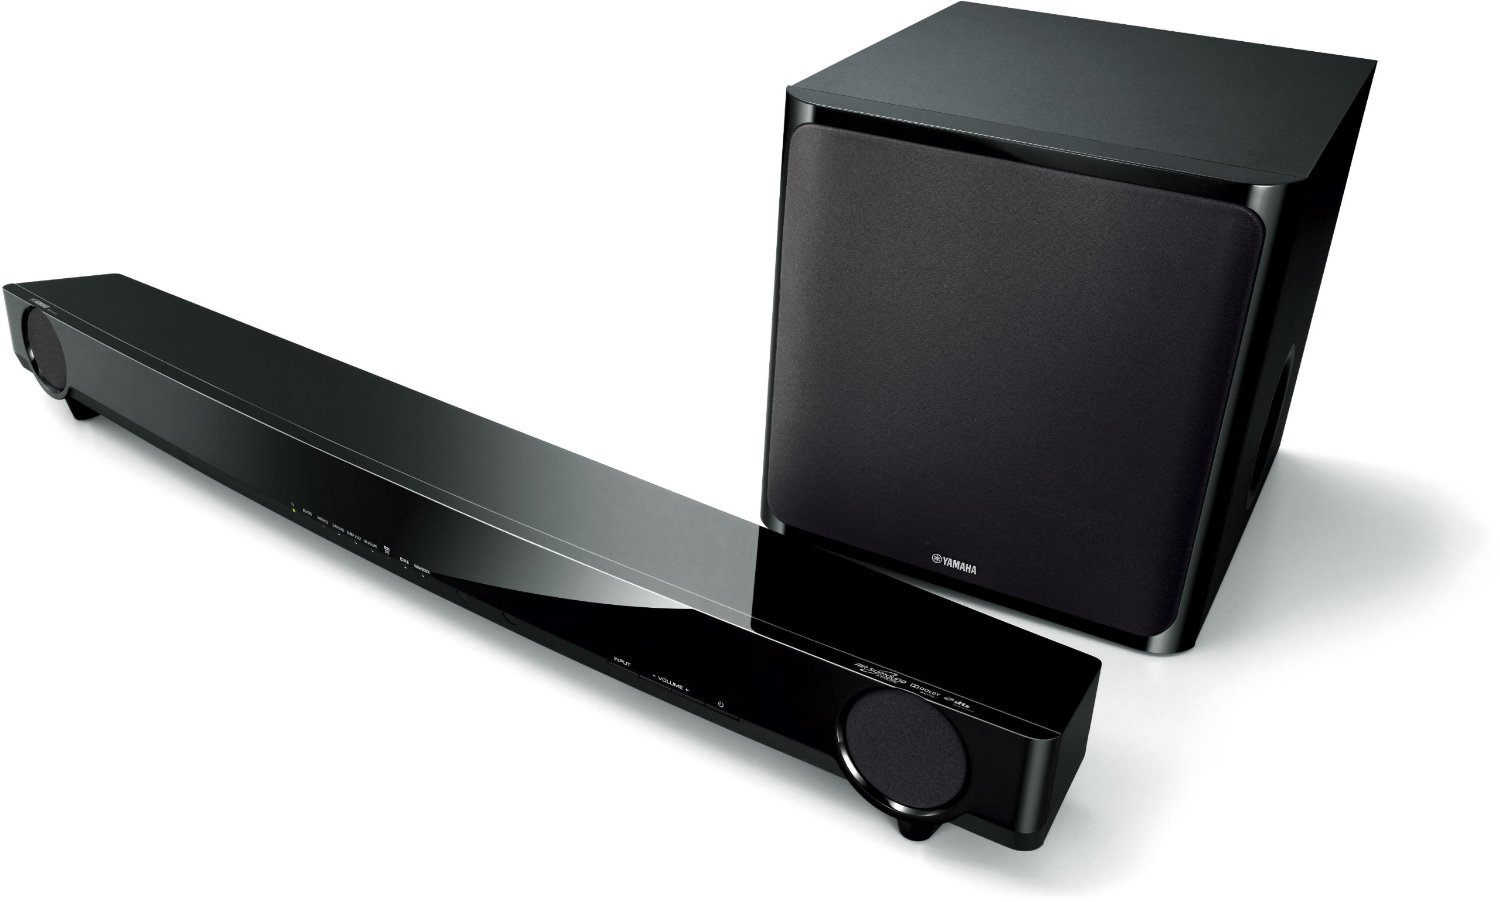 yamaha yas 101 soundbar instructions